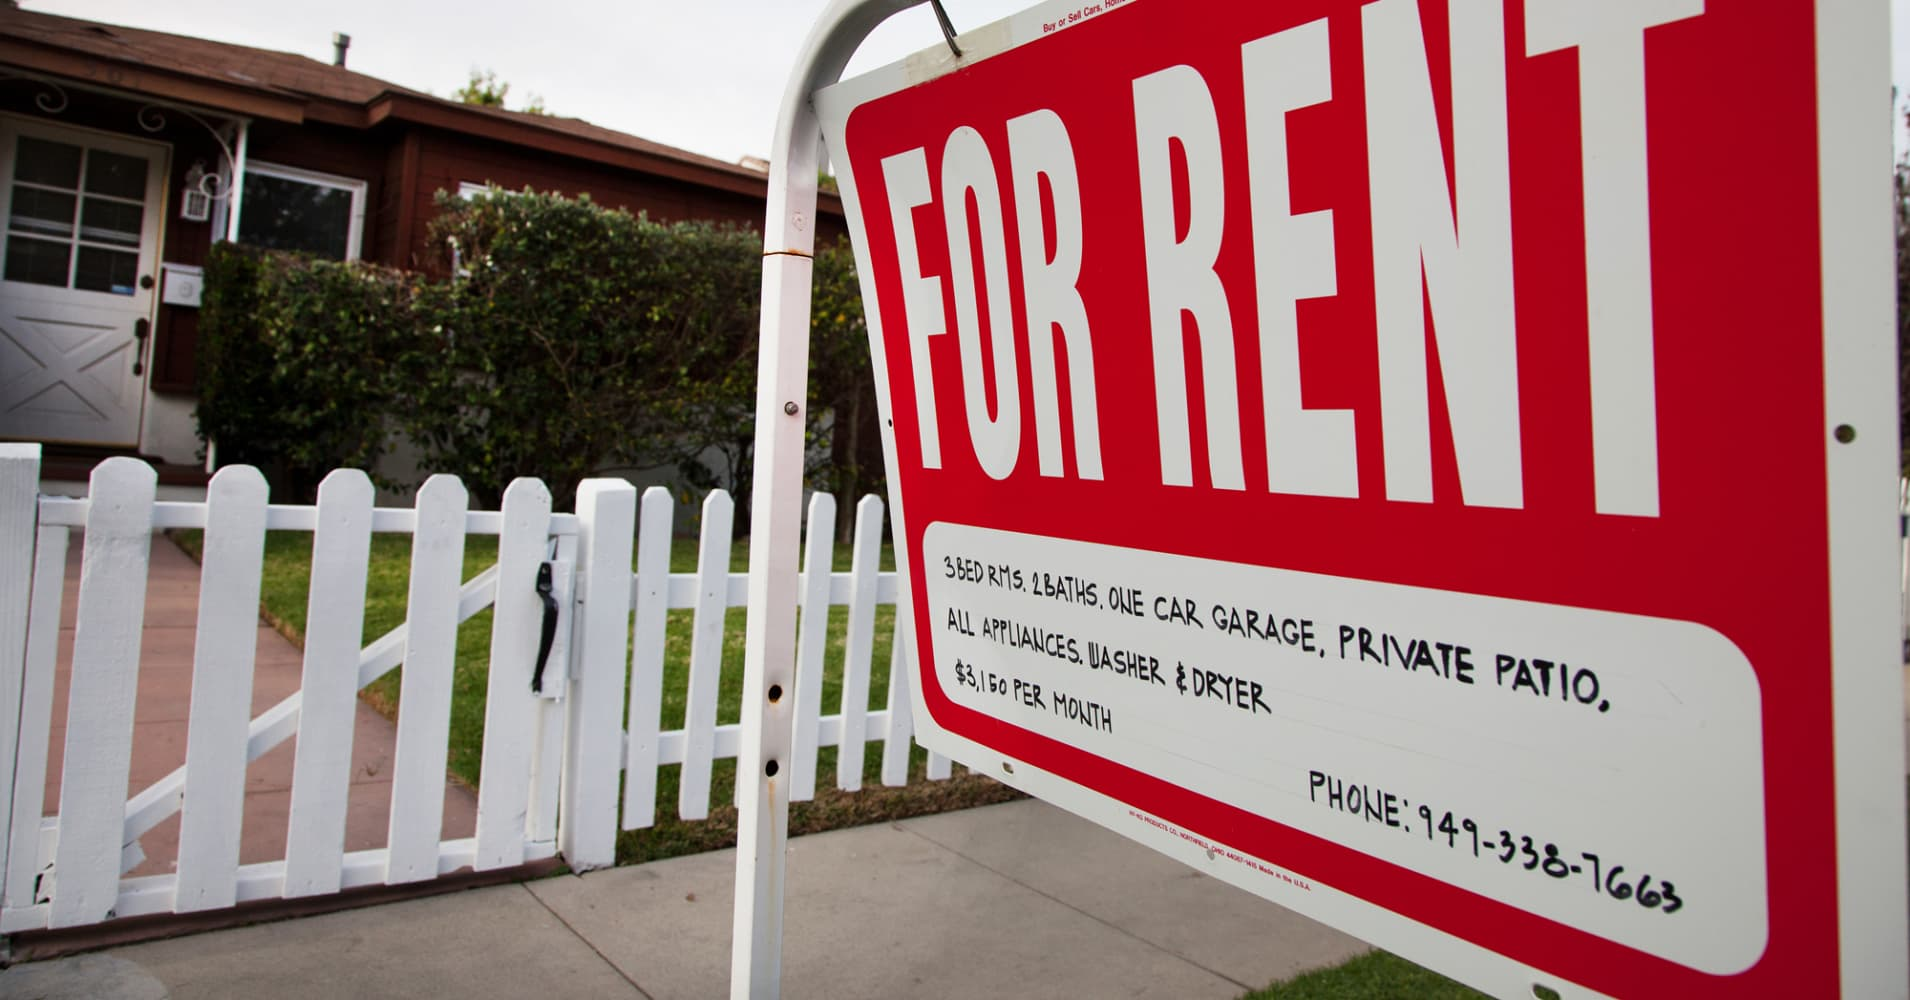 Home prices make smallest gains in nearly 4 years, but rents are hot